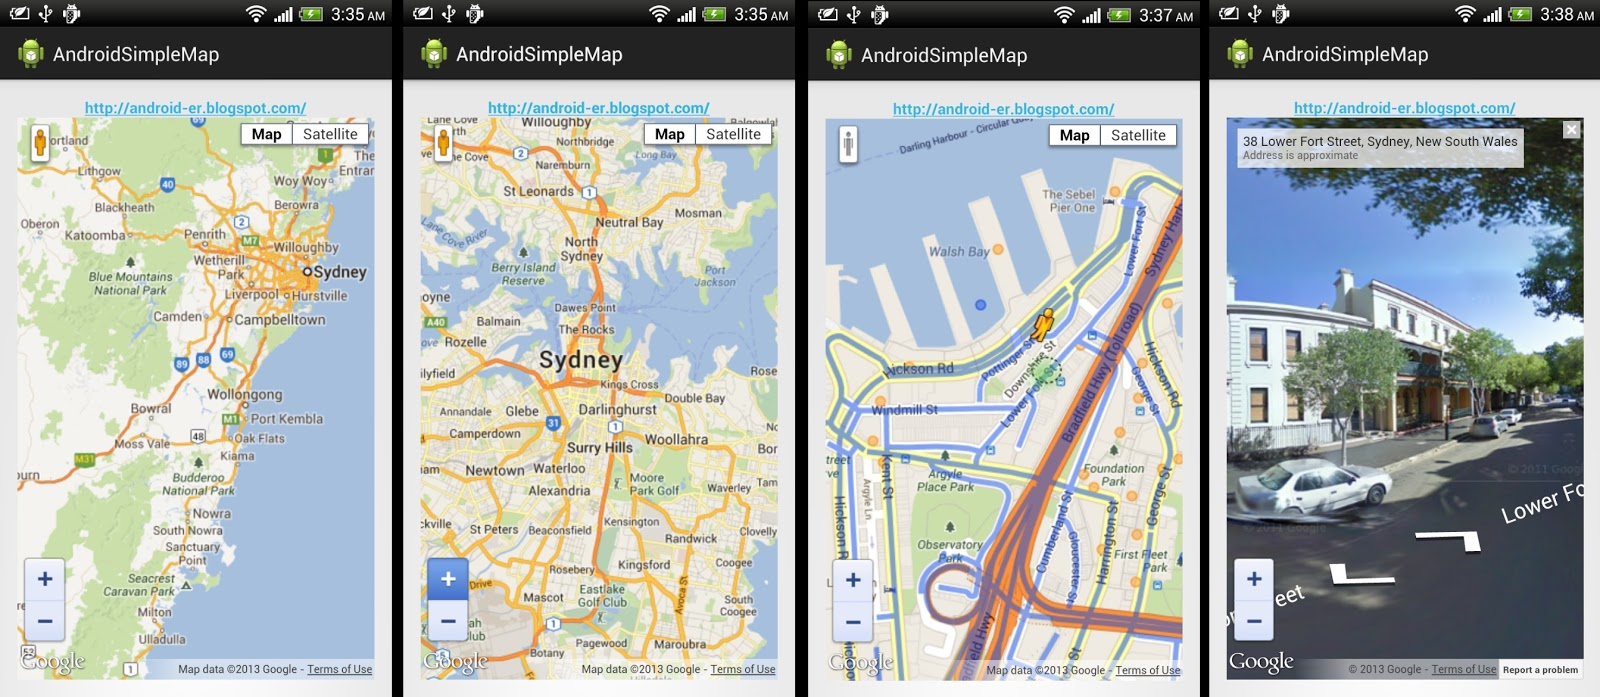 androider embed  using google maps javascript api v in android app. androider embed  using google maps javascript api v in